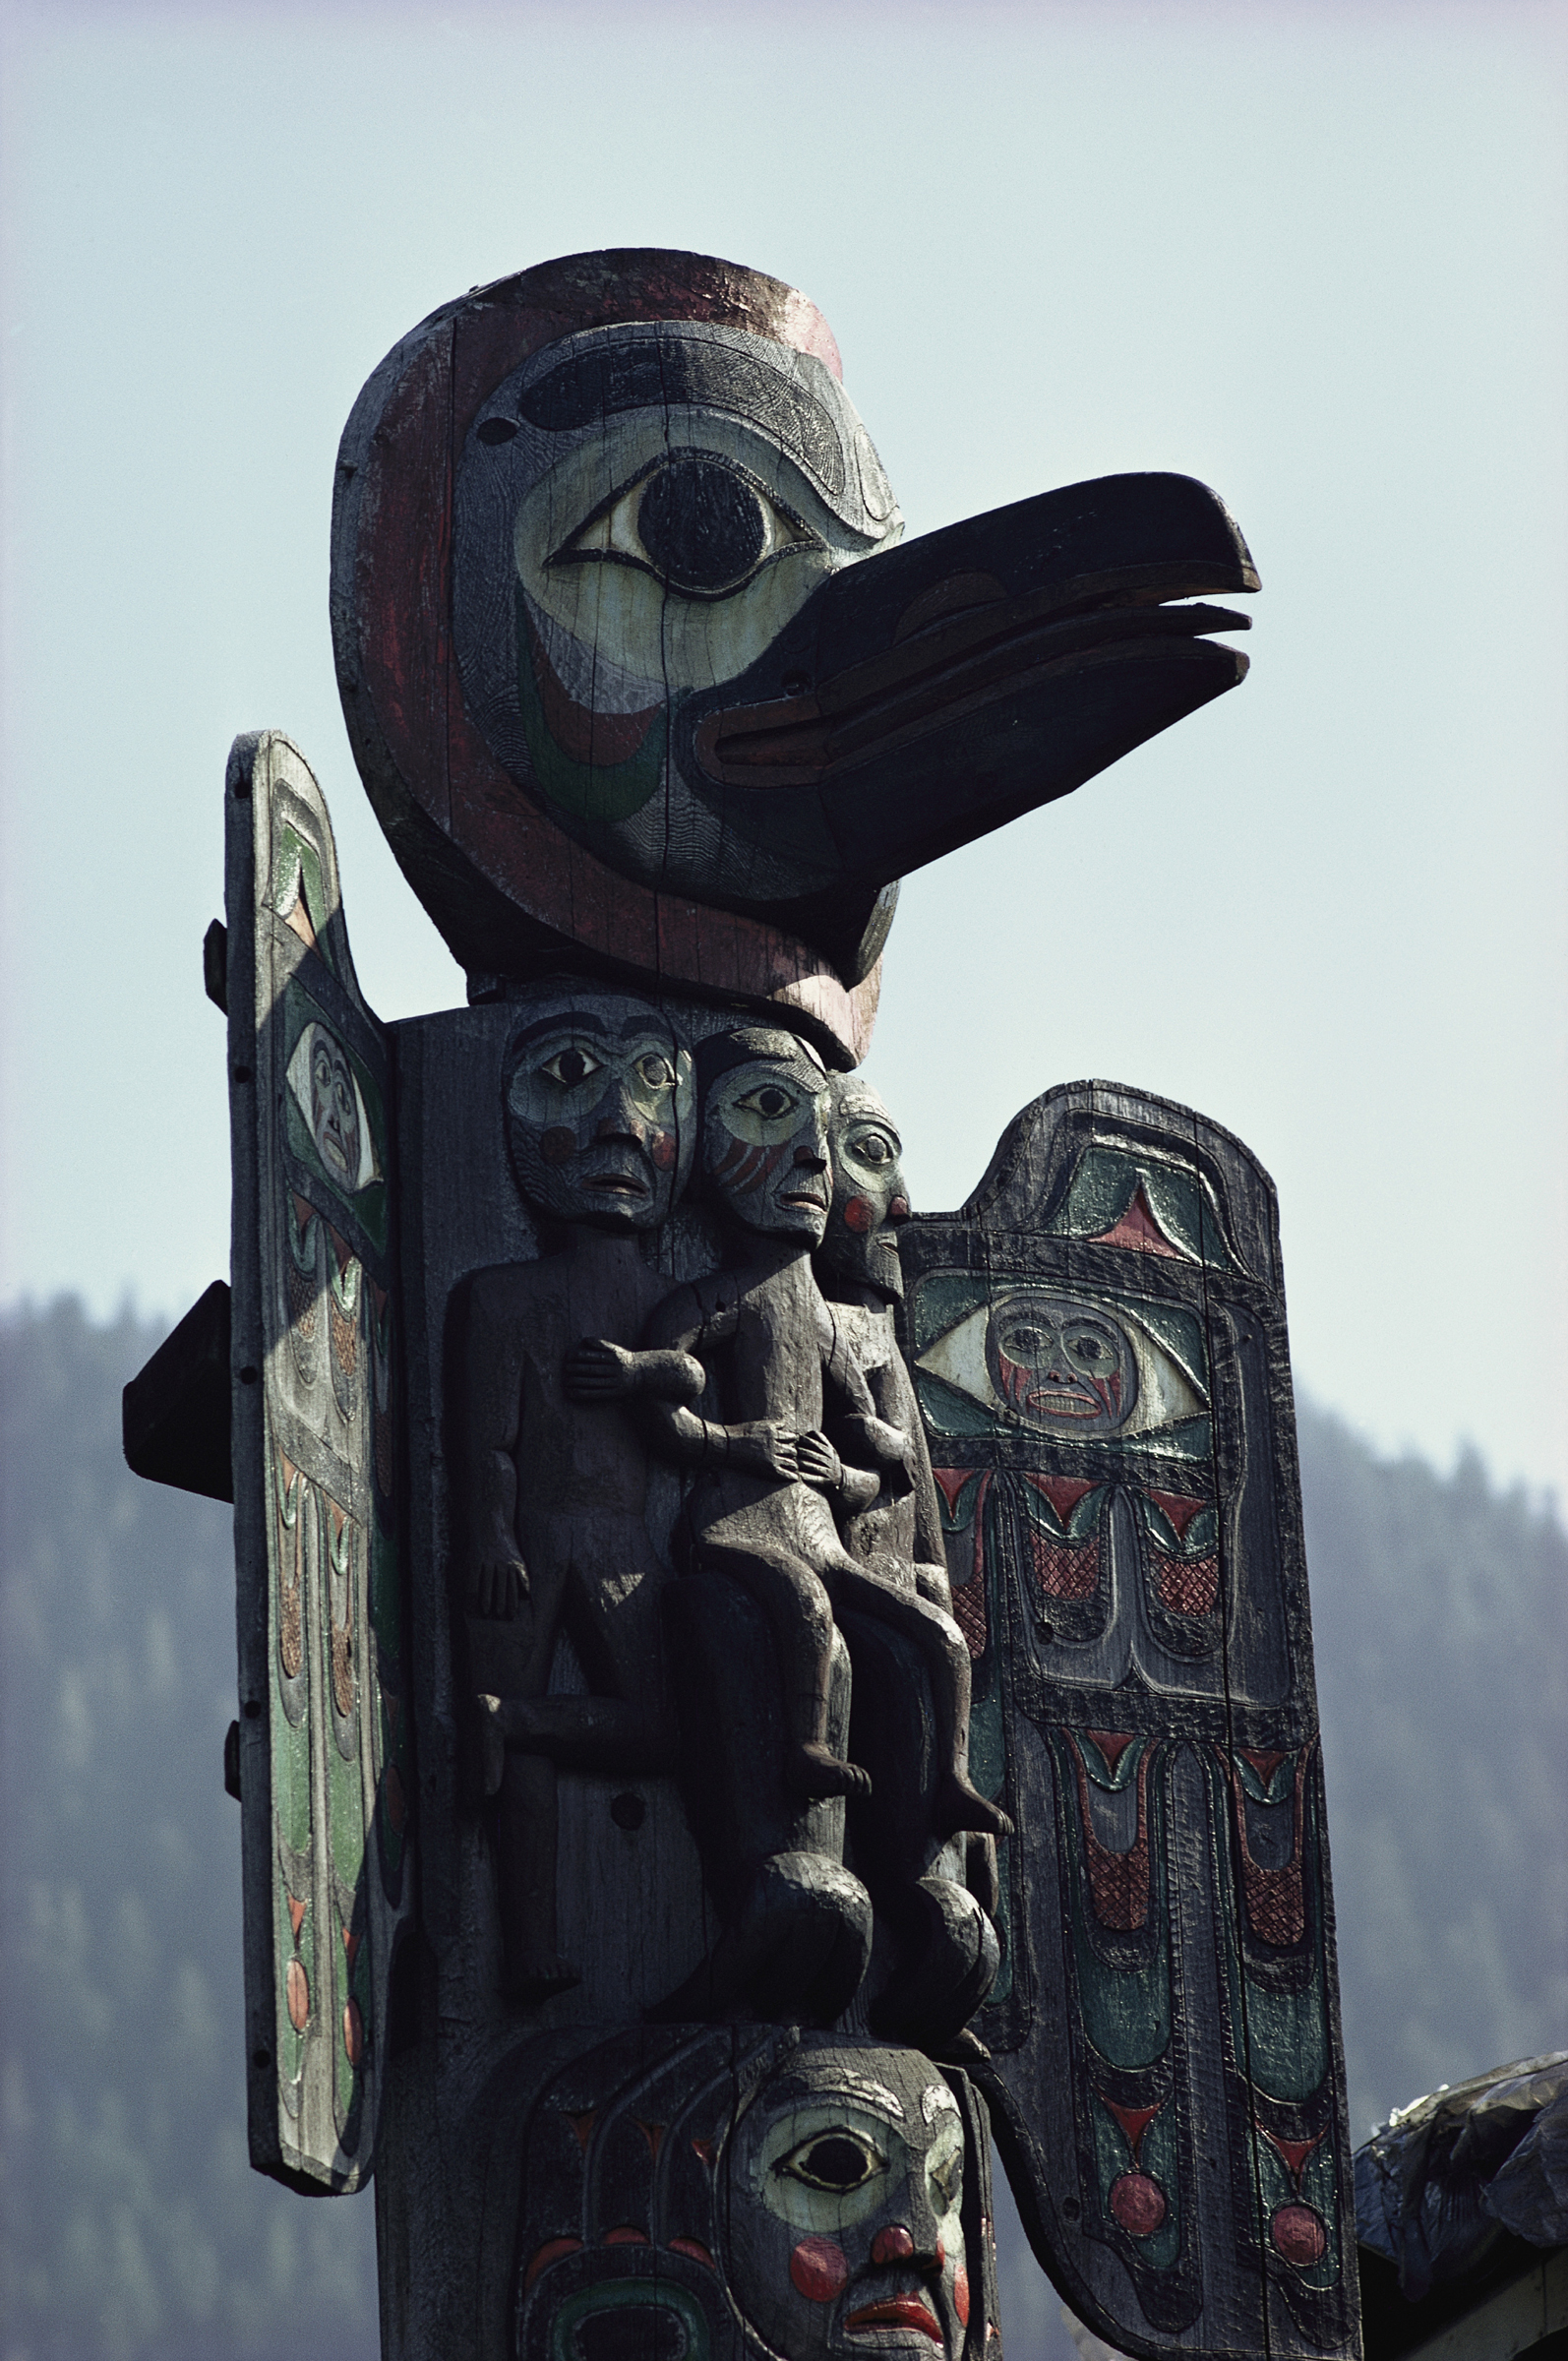 A Tlingit totem pole (Photo: George F. Mobley/National Geographic)